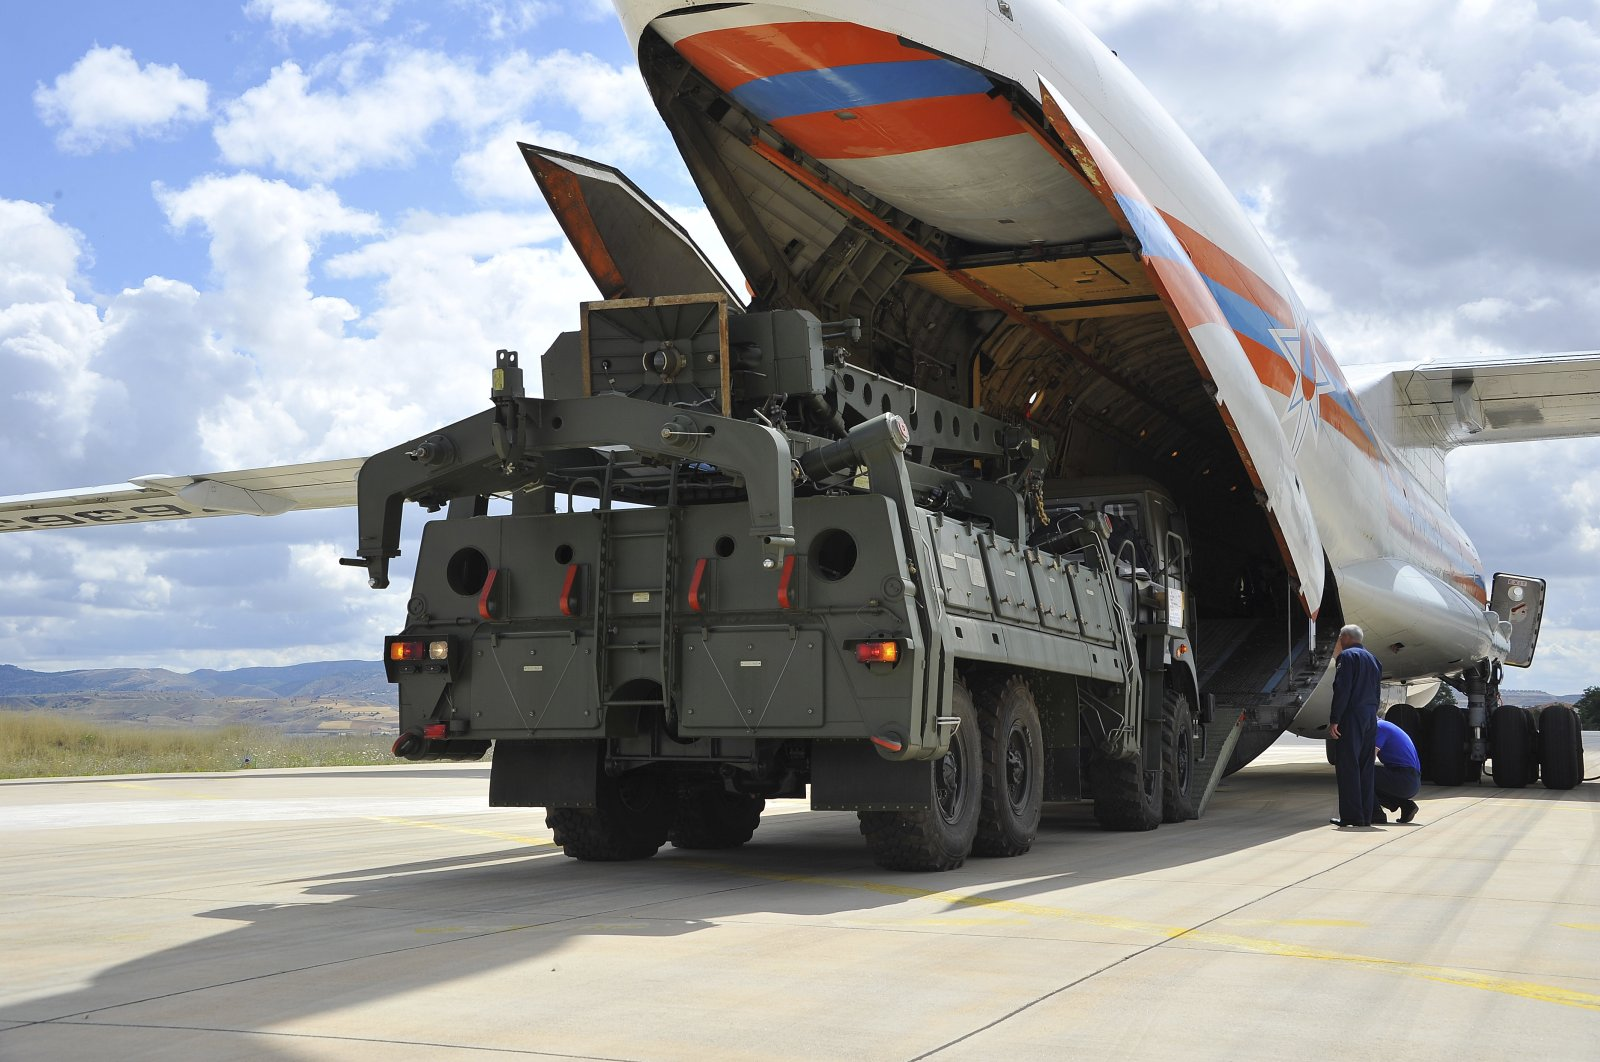 Military vehicles and equipment, parts of the S-400 air defense systems, are unloaded from a Russian transport aircraft, at Mürted military airport in Ankara, Turkey, July 12, 2019. (Turkish Defense Ministry via AP)